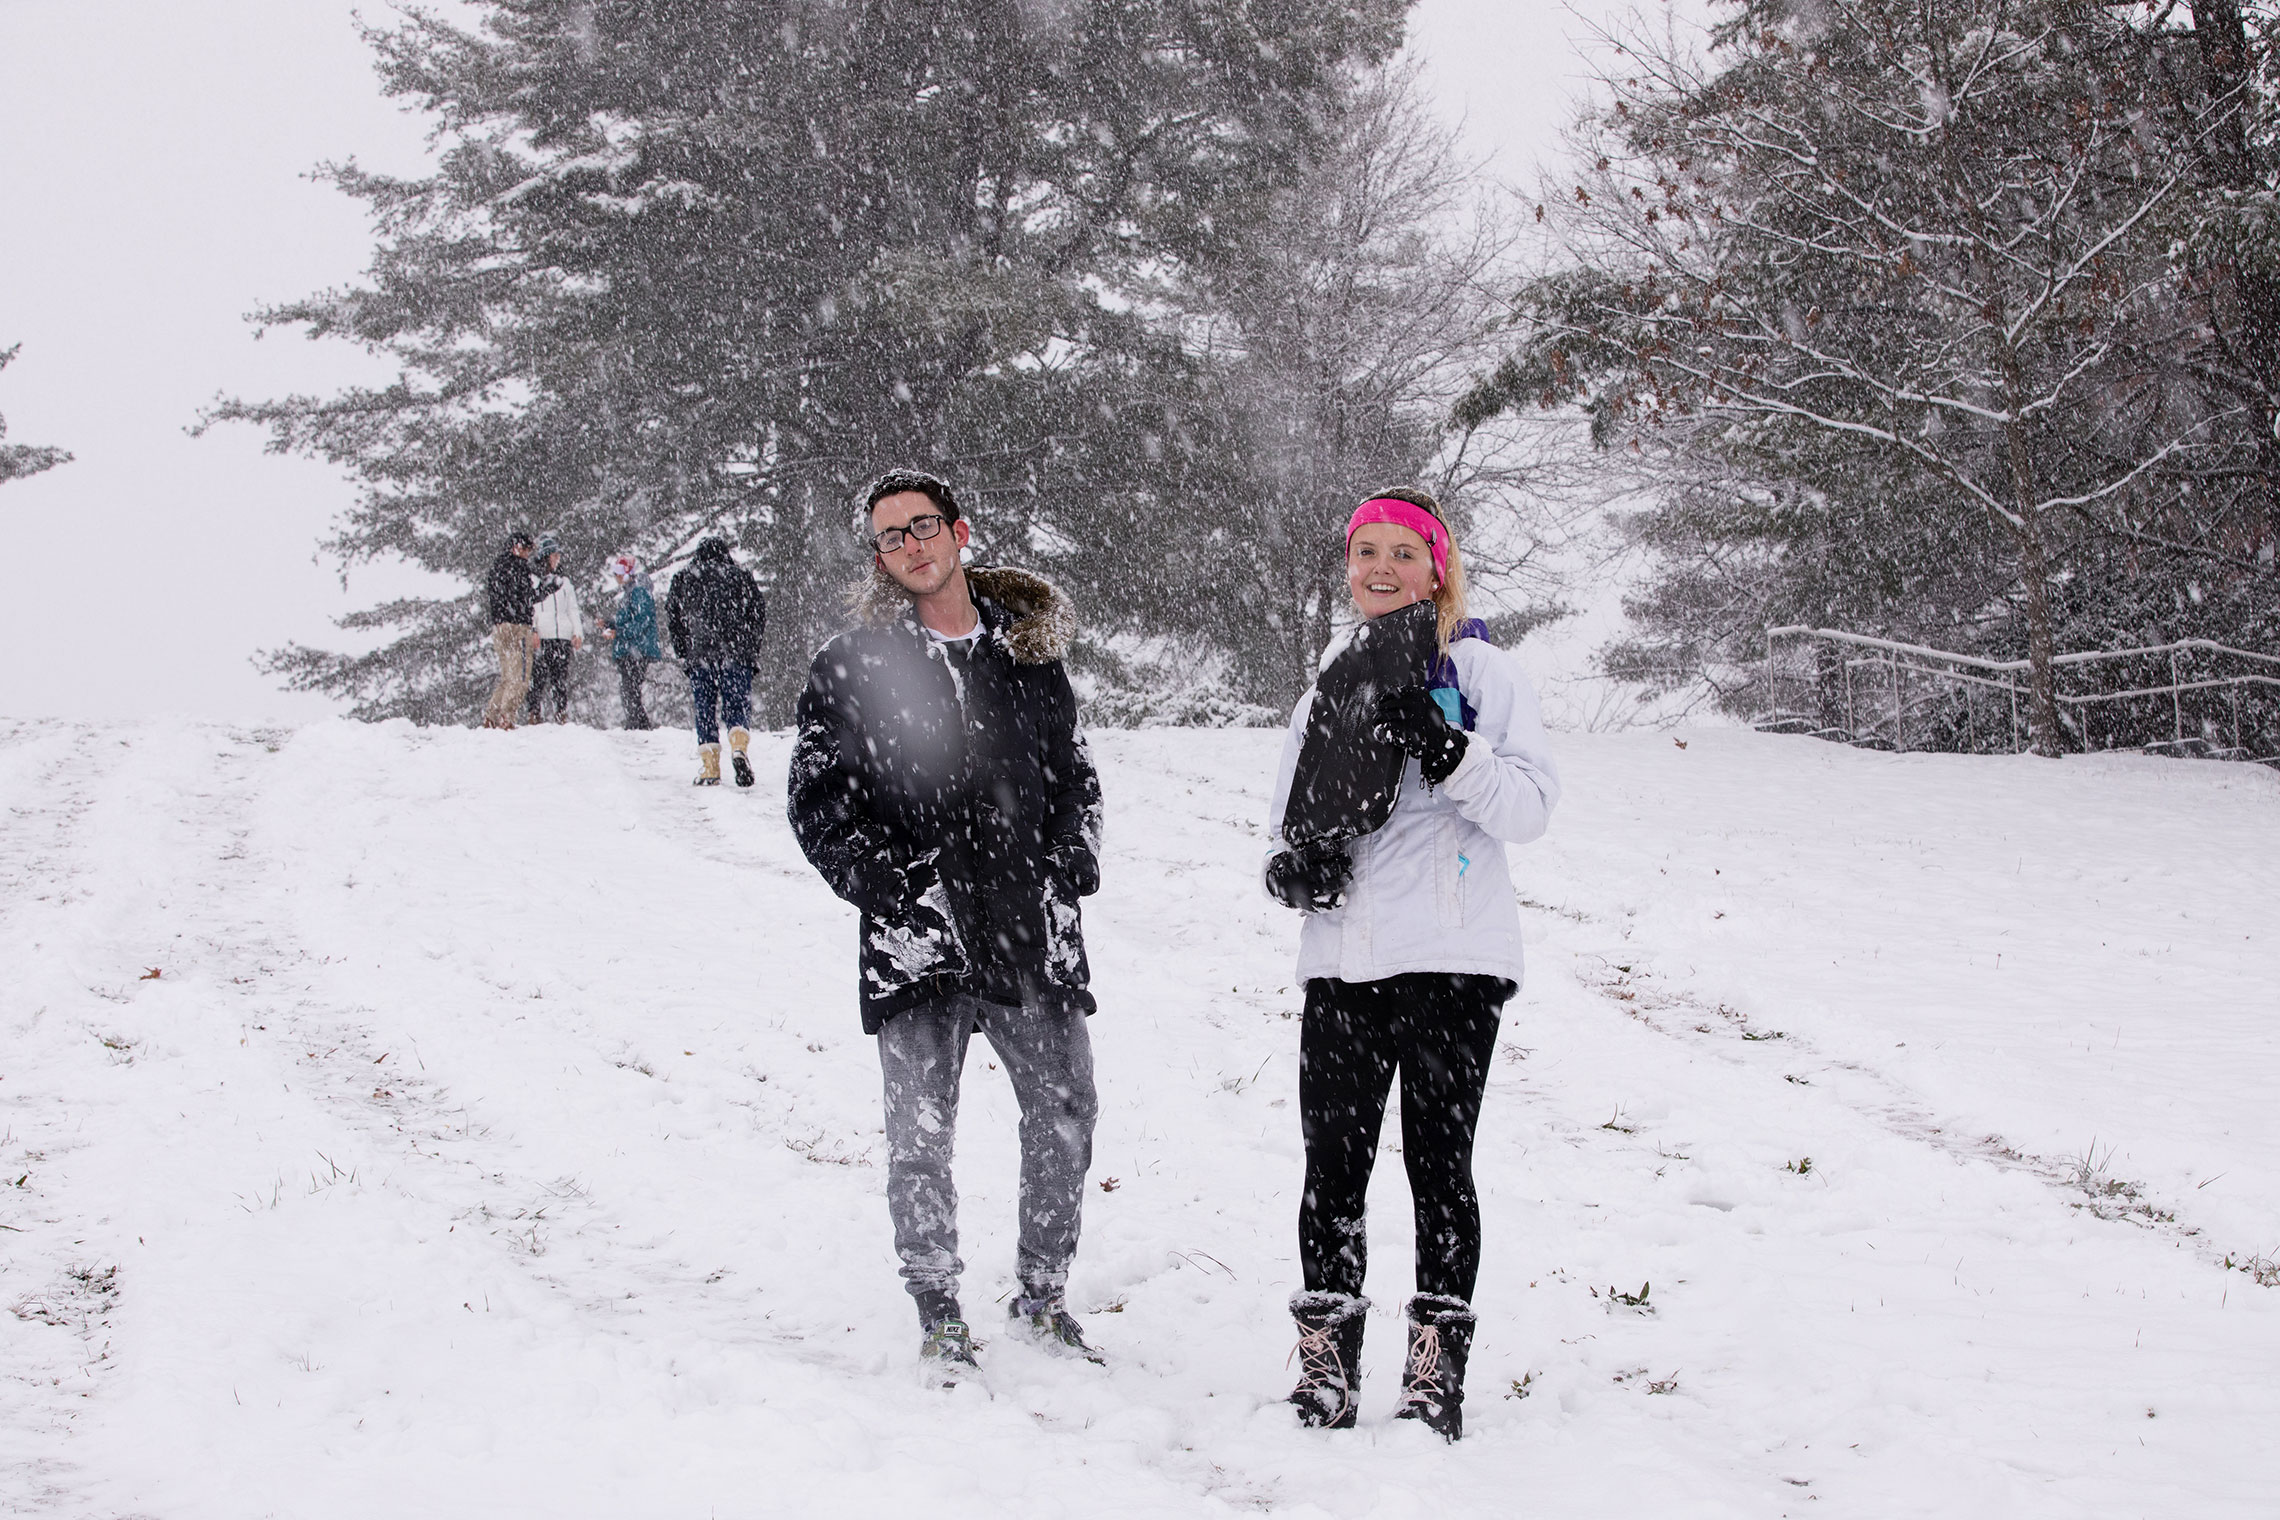 Amherst student enjoying the first snowfall of the year.